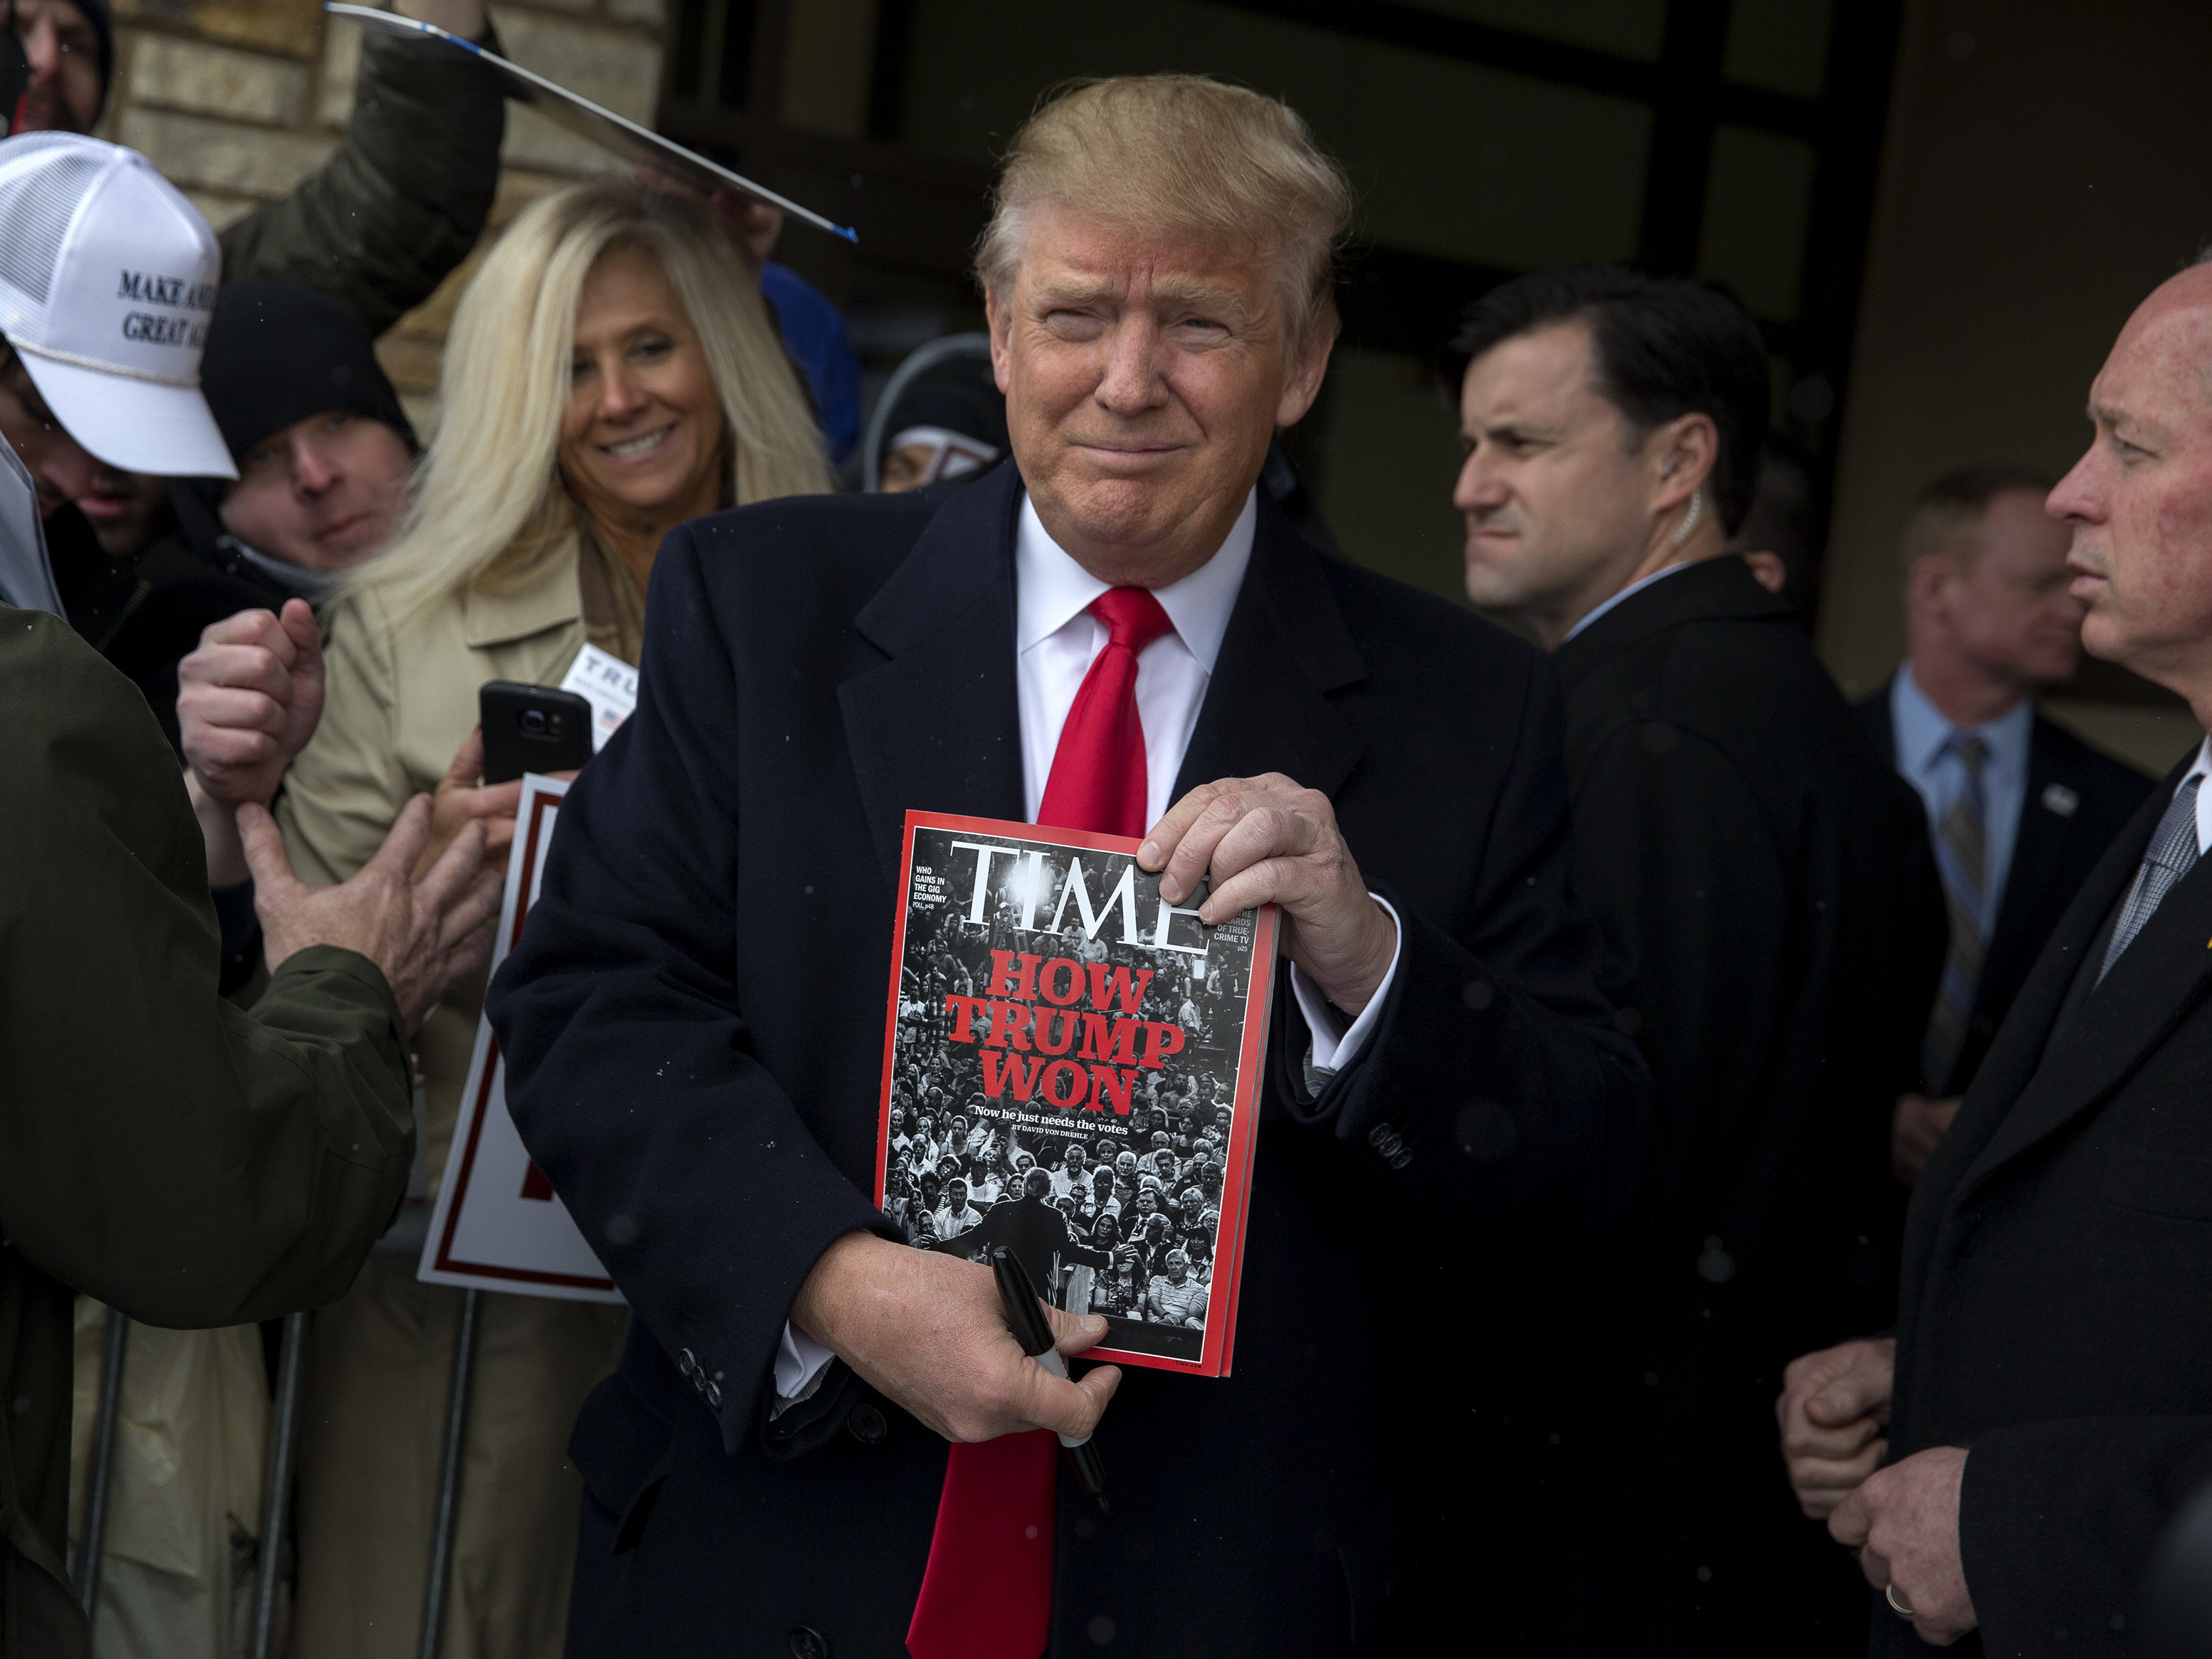 TIME Magazine Refutes Donald Trump's 'Person of the Year' Claim